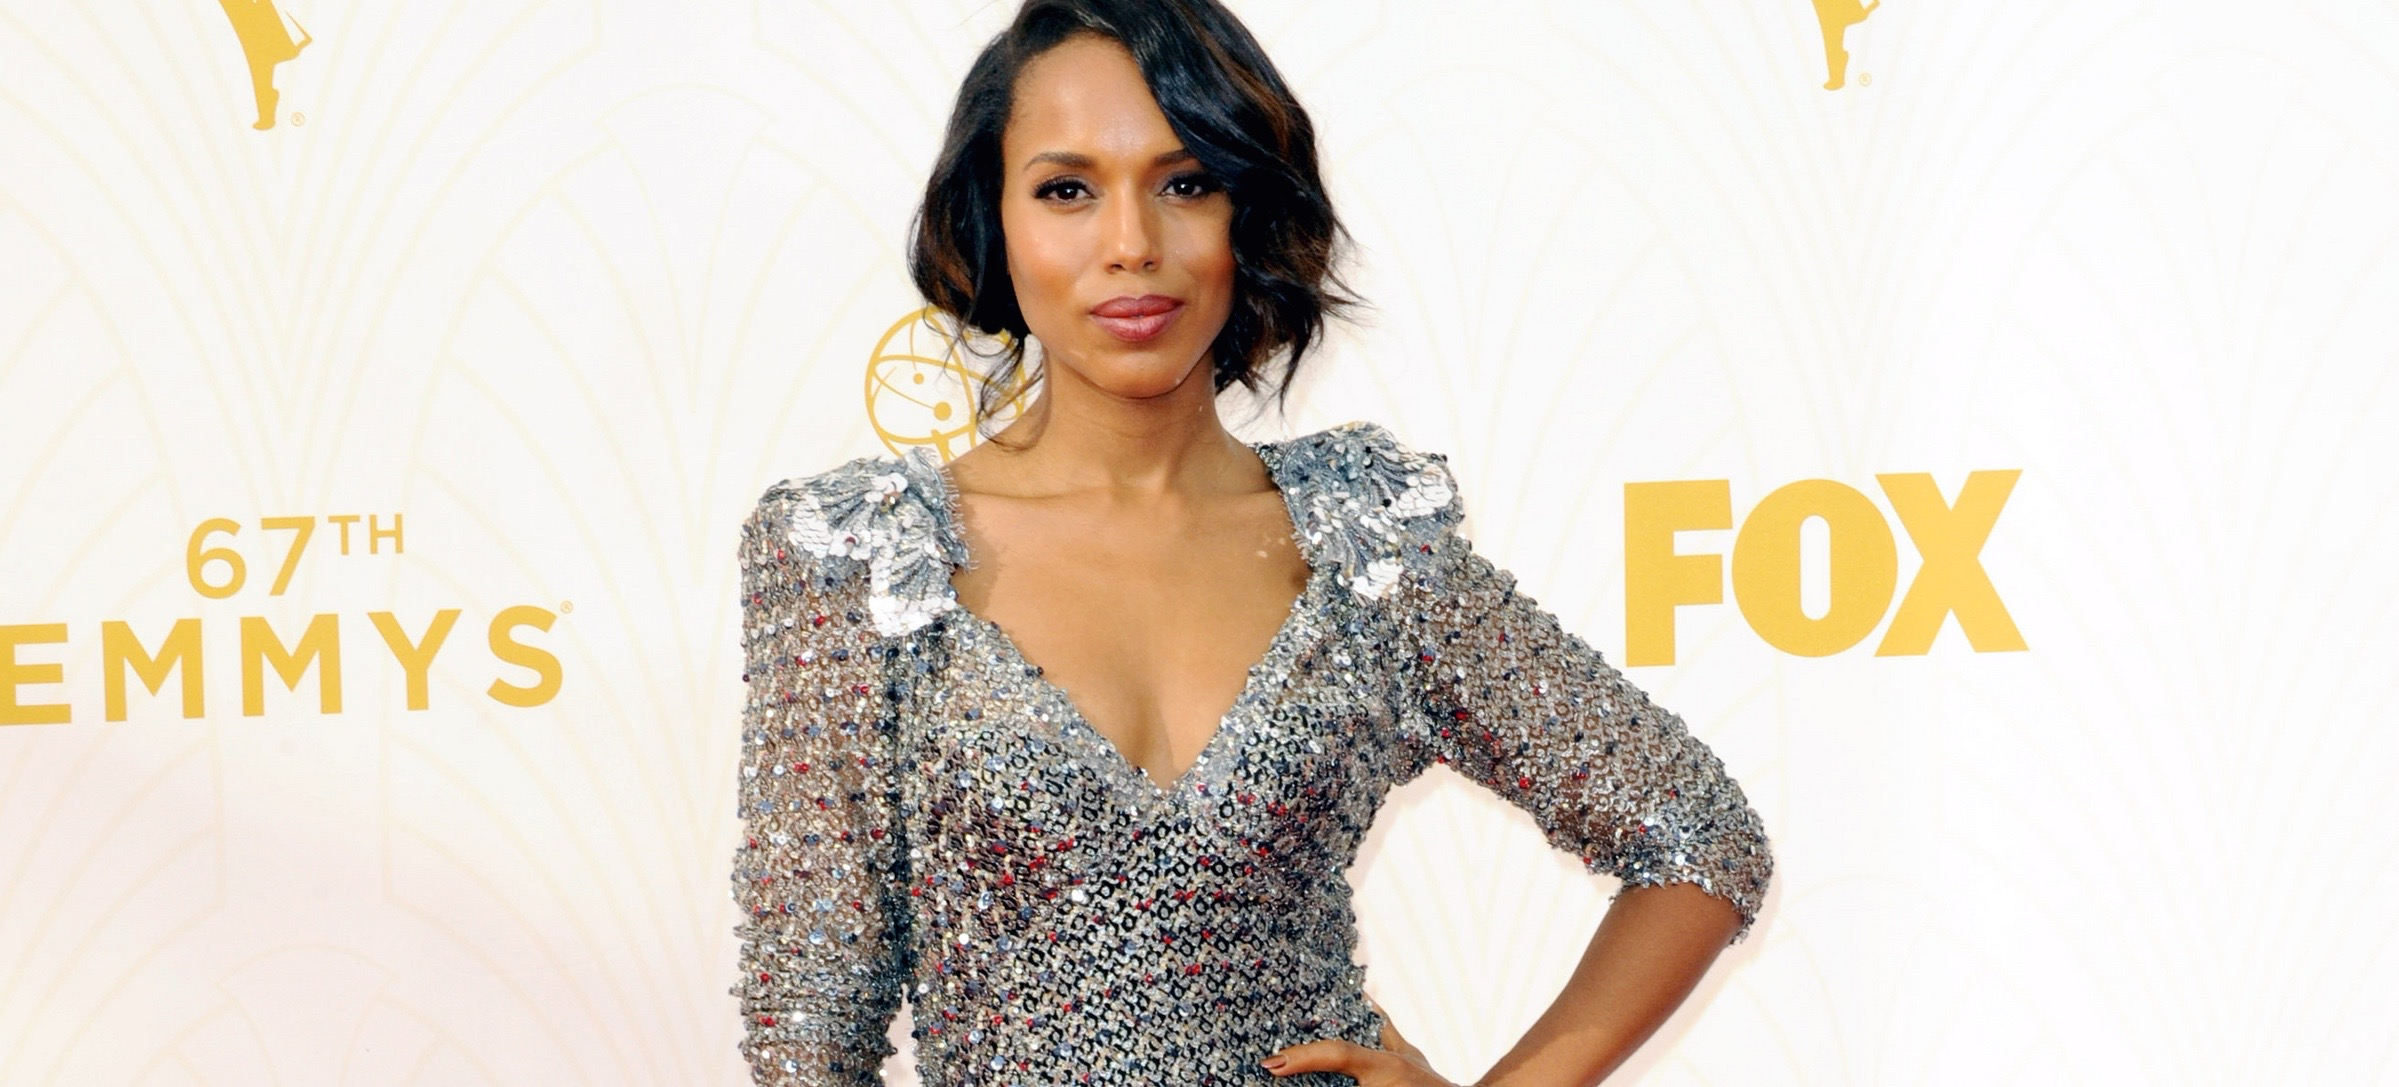 2015 Emmys: All Of The Red Carpet Fashion & Beauty Looks